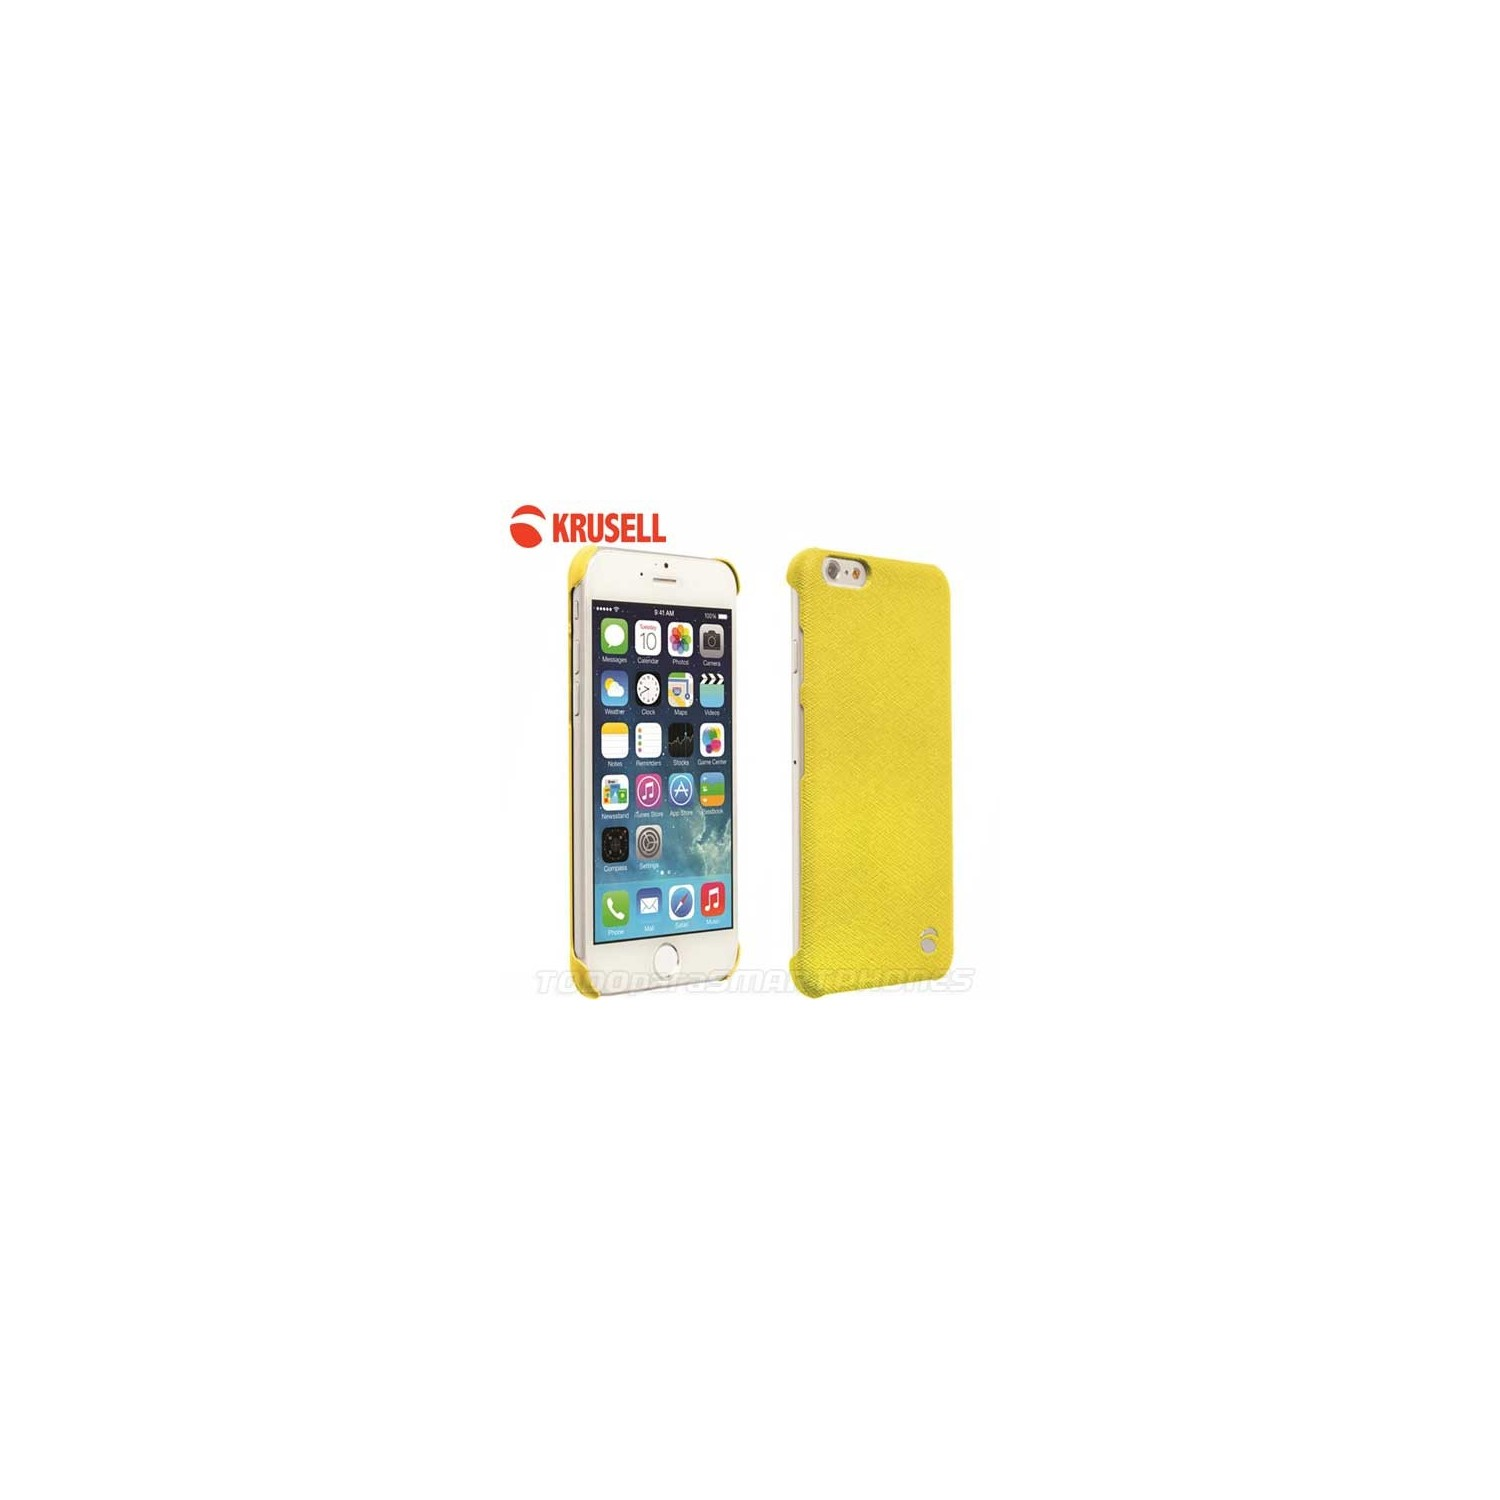 Case - Krusell Malmo Texture Cover for iPhone 6